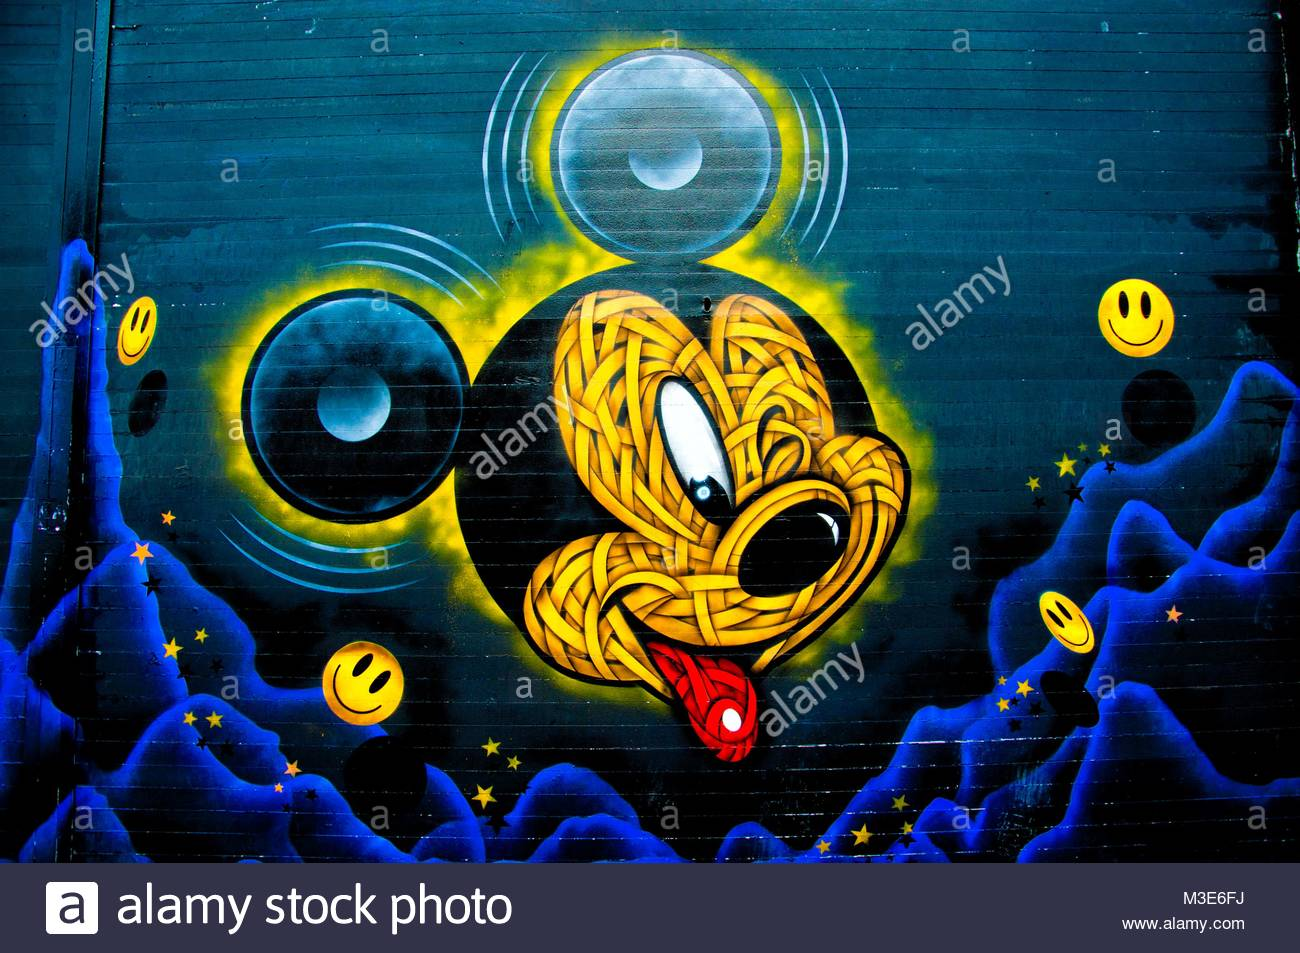 Mickey mouse art stock photos mickey mouse art stock images alamy mickey winking stock image biocorpaavc